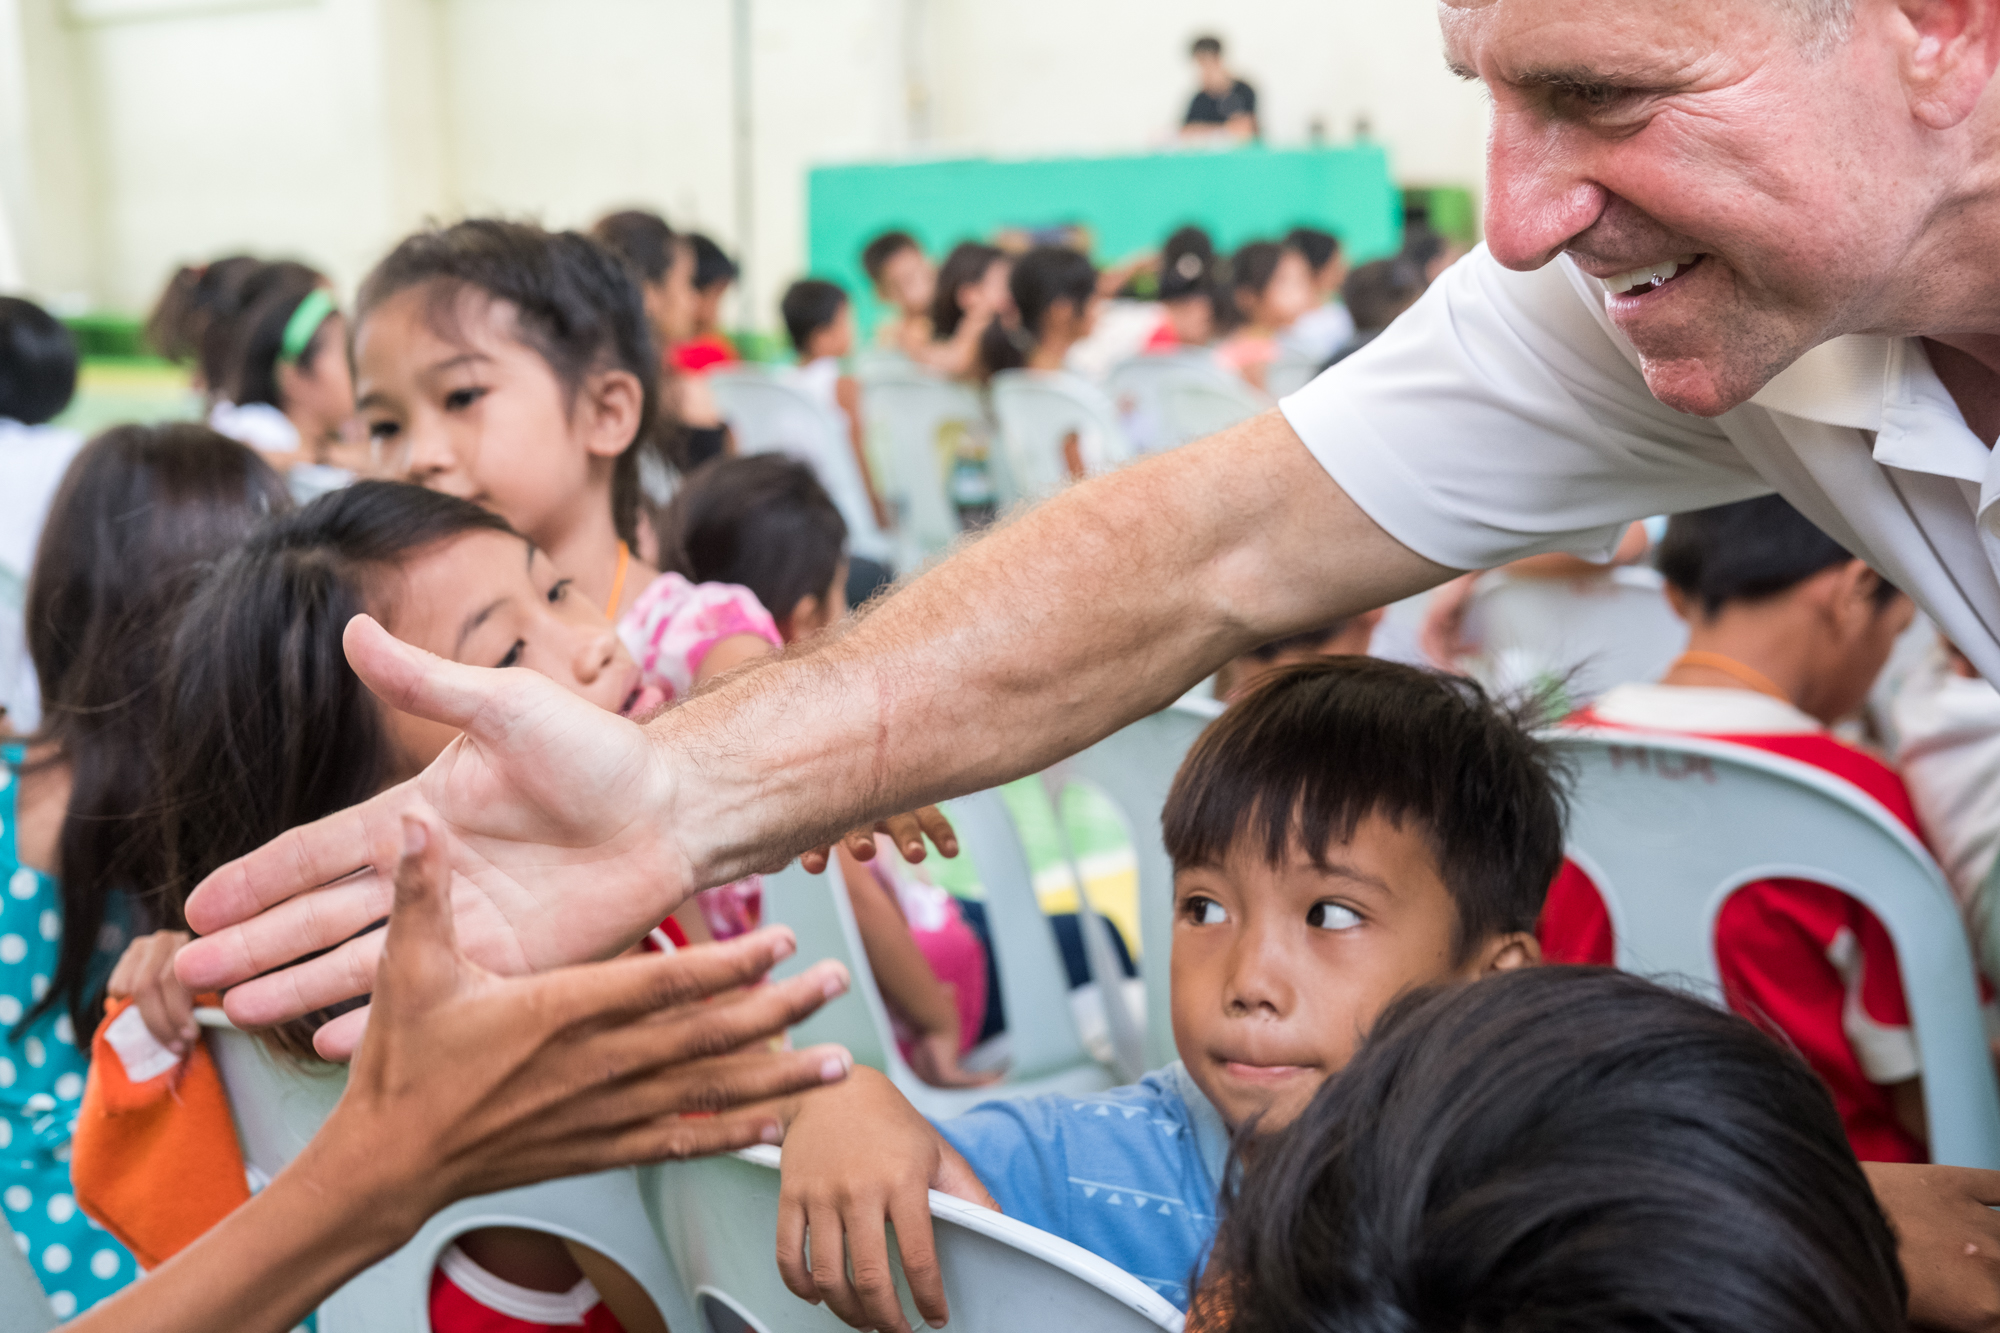 Frank Becker (right) greets children attending a community-giving event in Cebu, Philippines. During the event, Frank and local organizations include fun activities and games for the children.